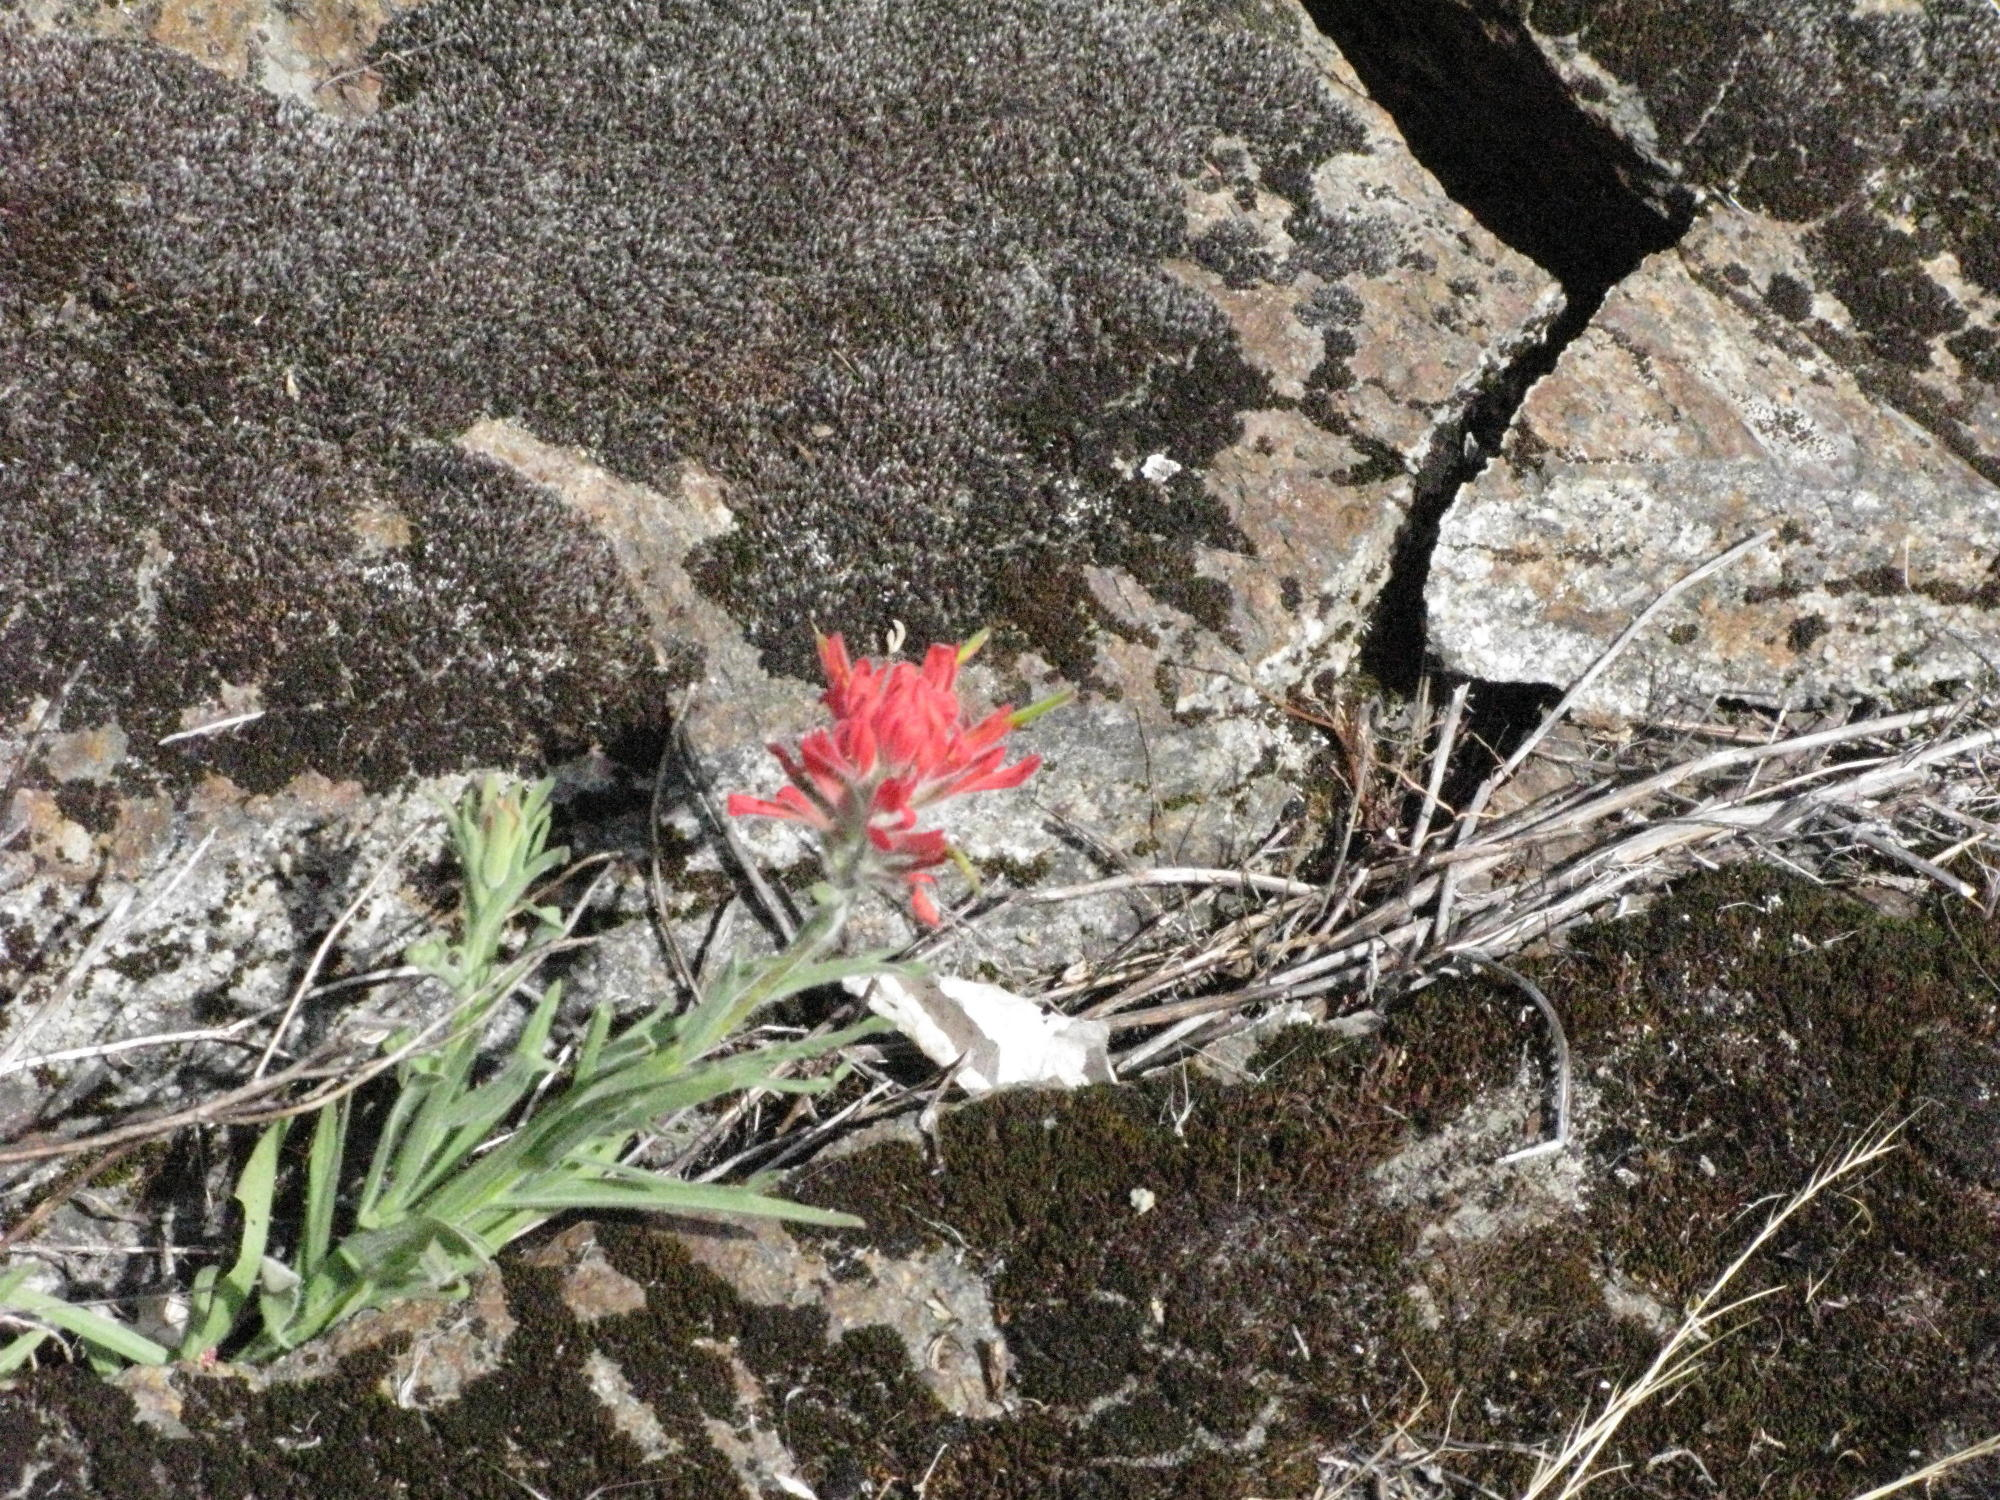 Indian Paintbrush on Shore Near Eel River, Covelo Yoga and Healing Festival